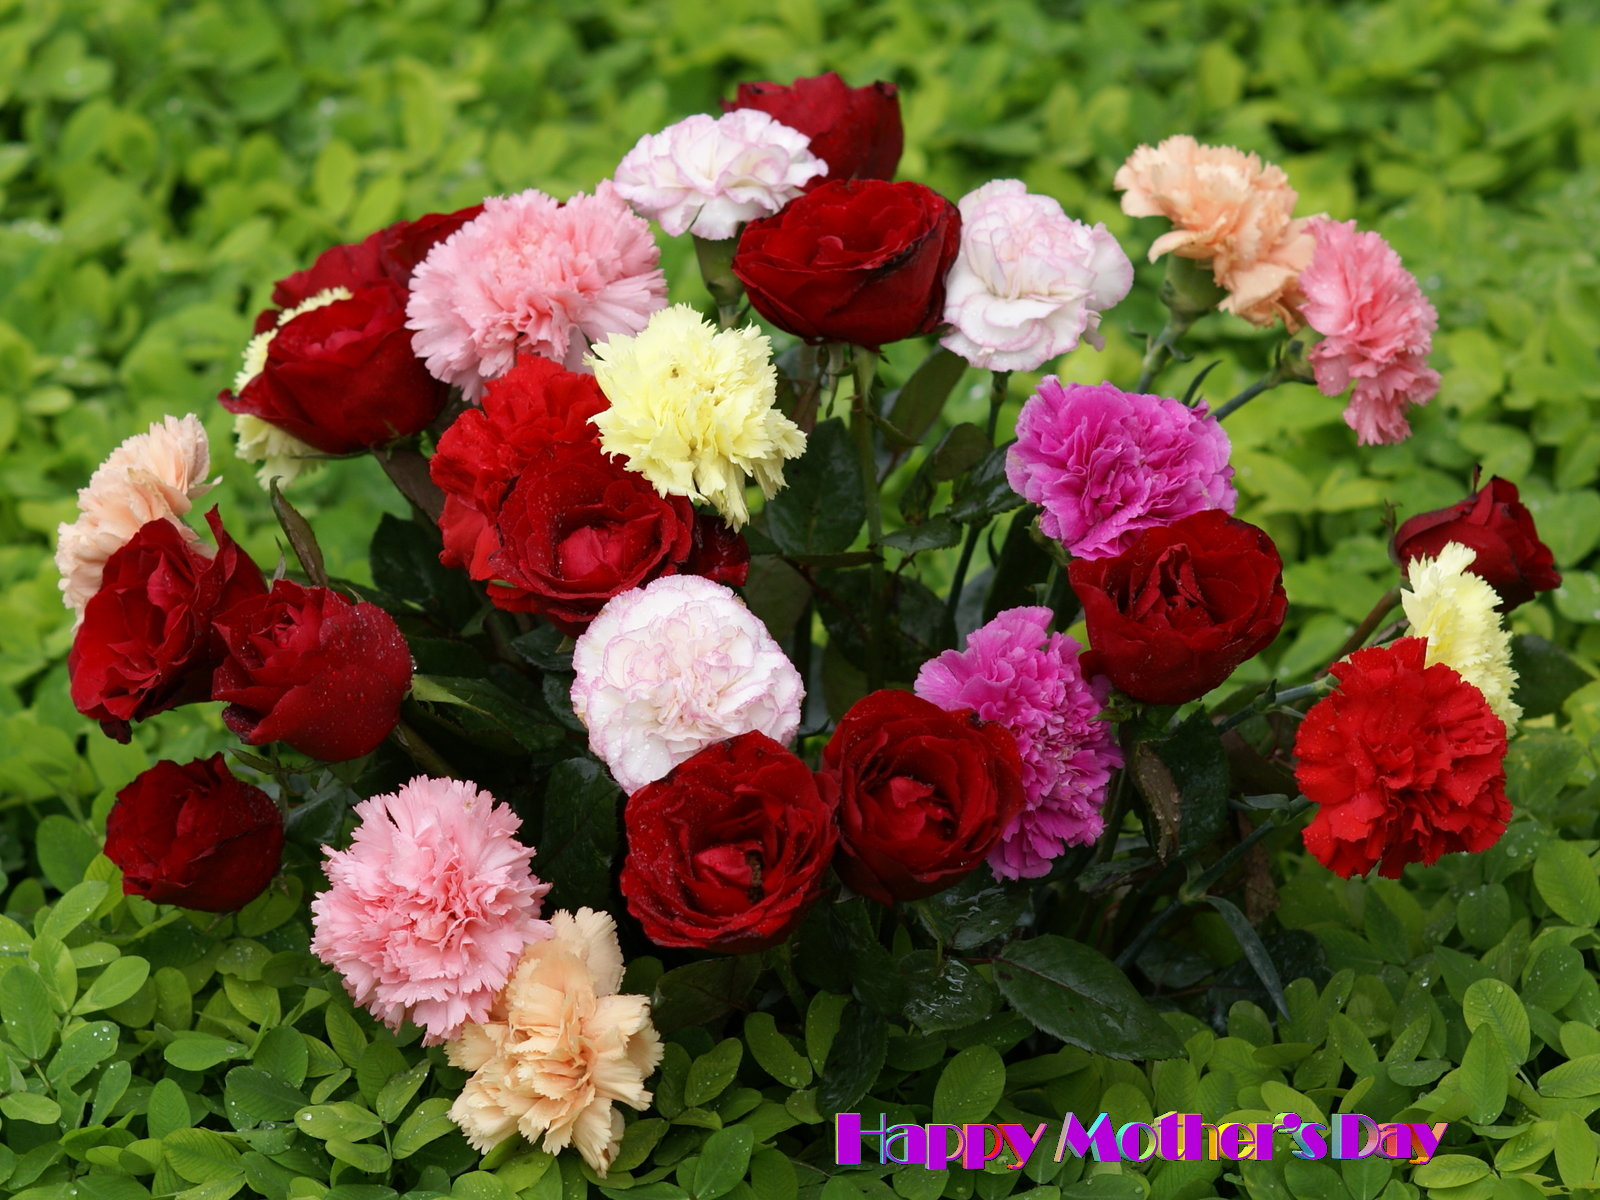 Mothers day wallpaper beautiful flowers Beautiful flowers photos